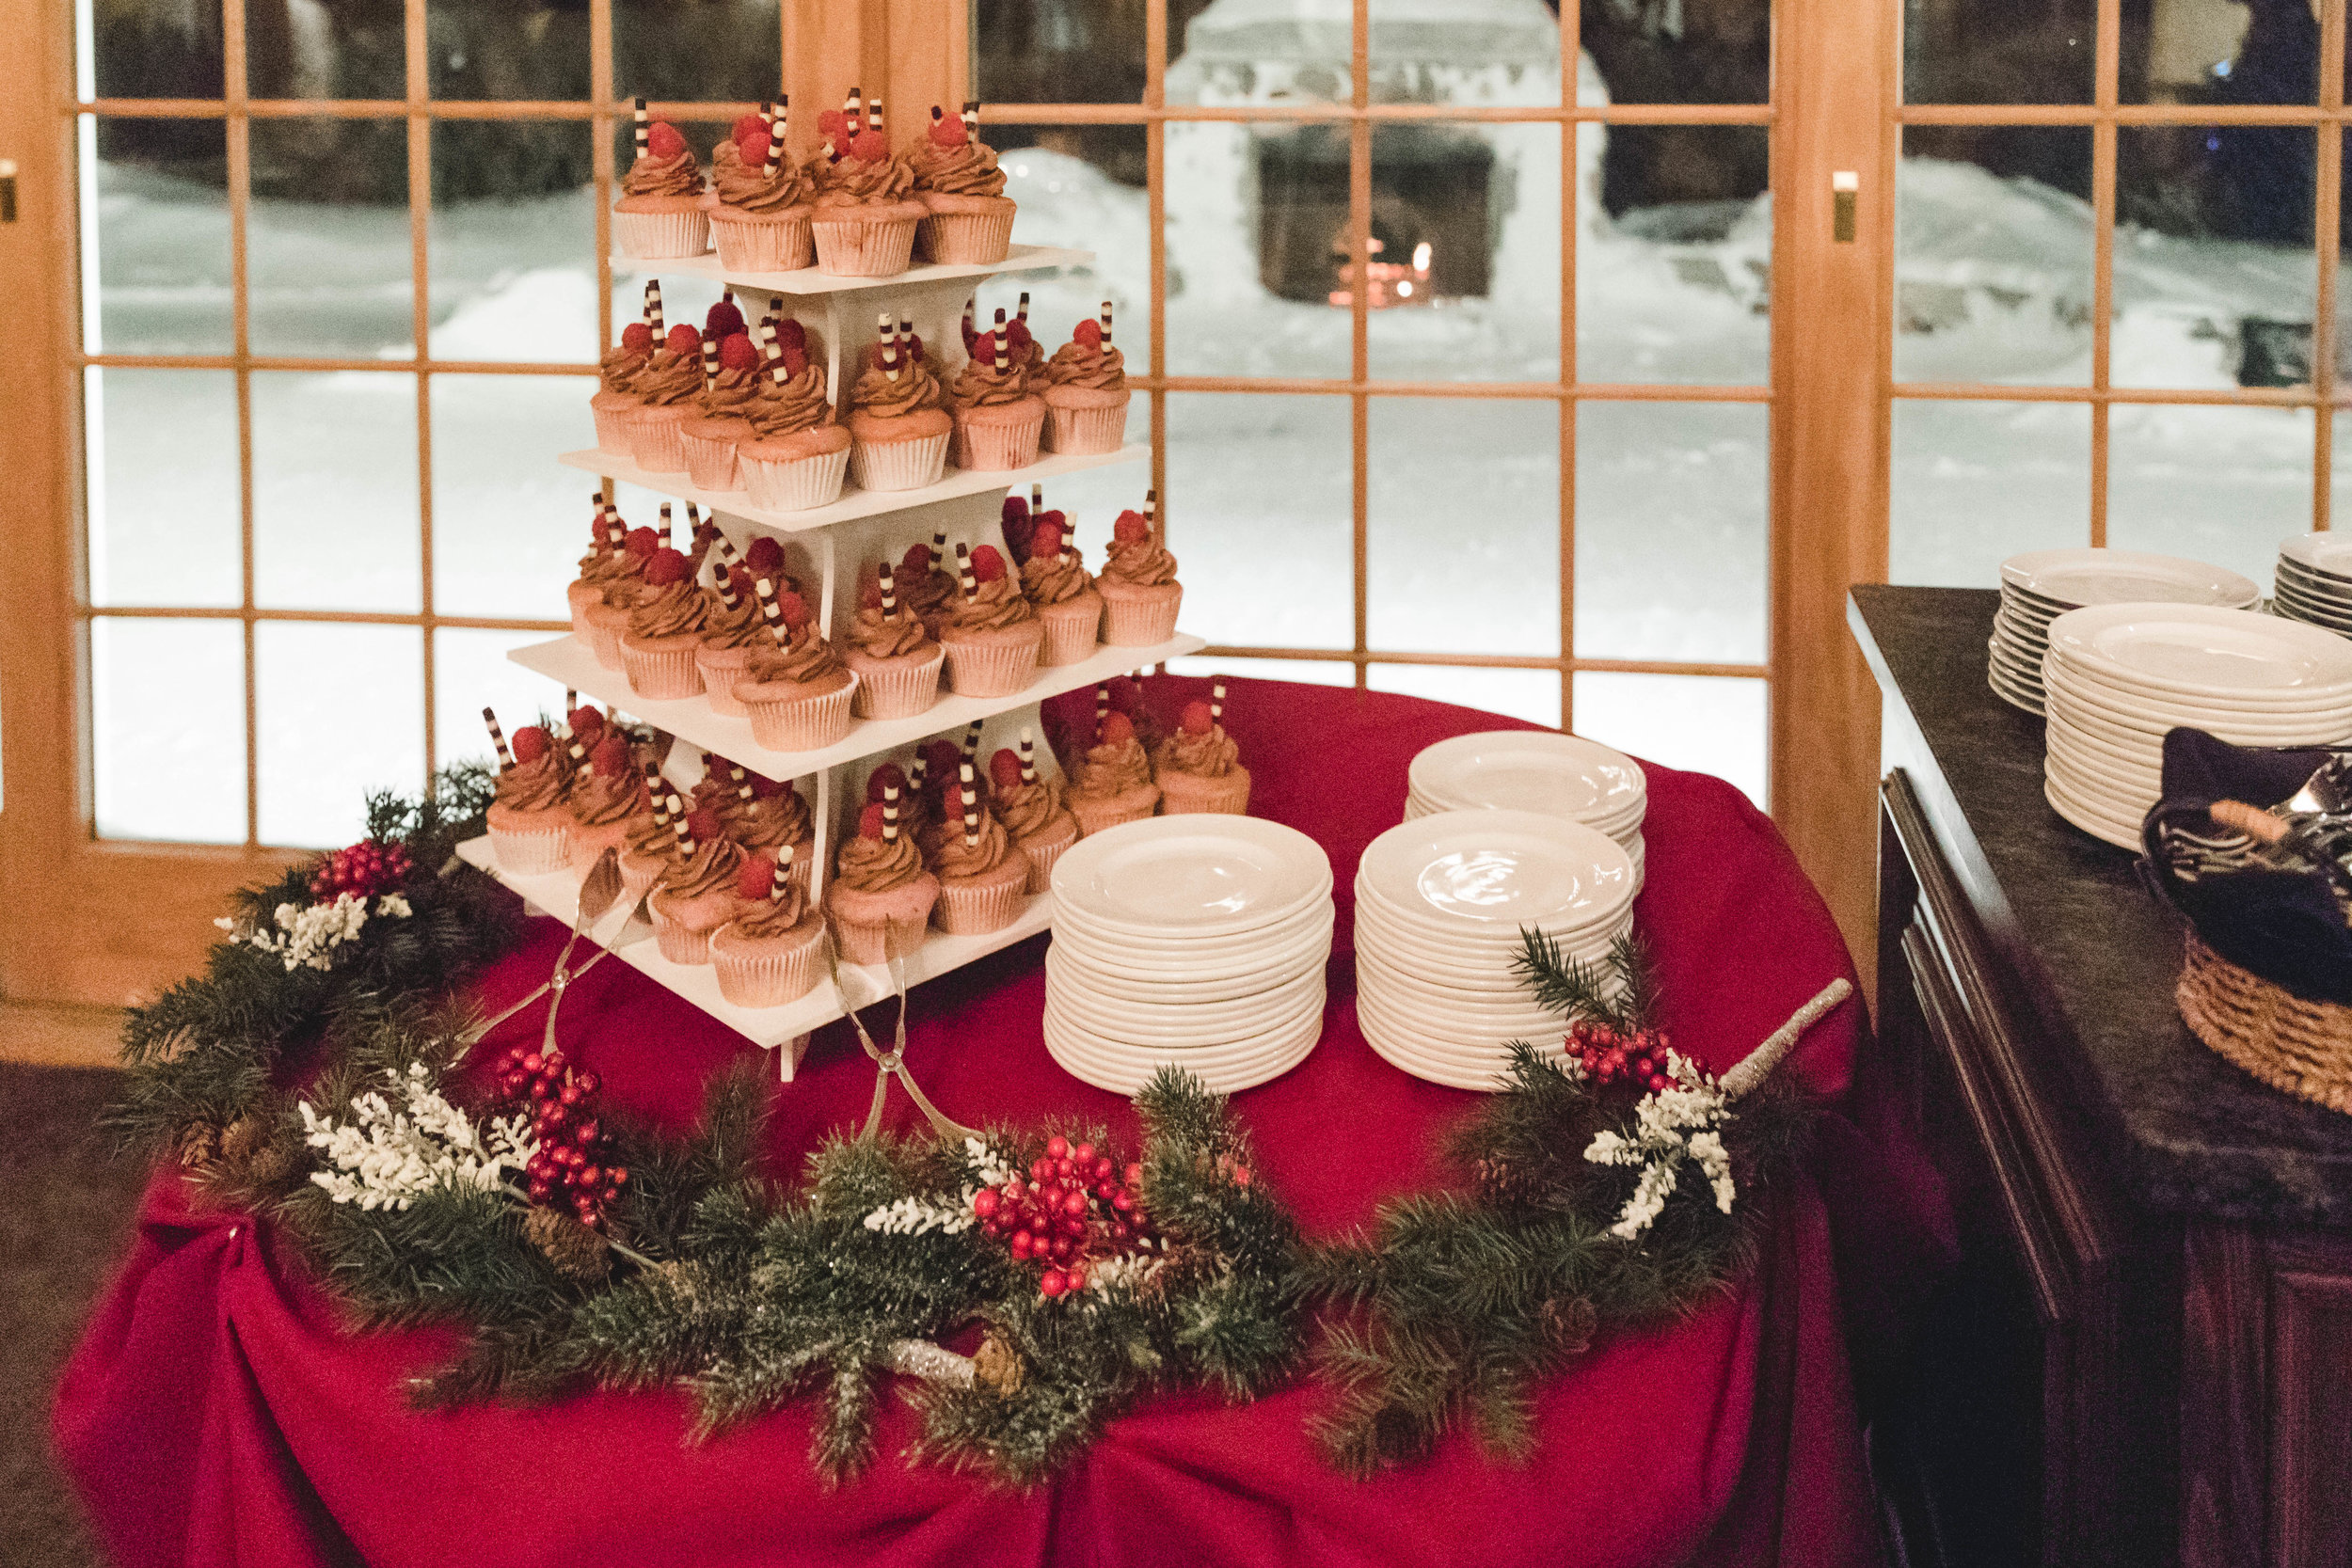 wedding cupcake stand in front of outdoor fireplace January wedding